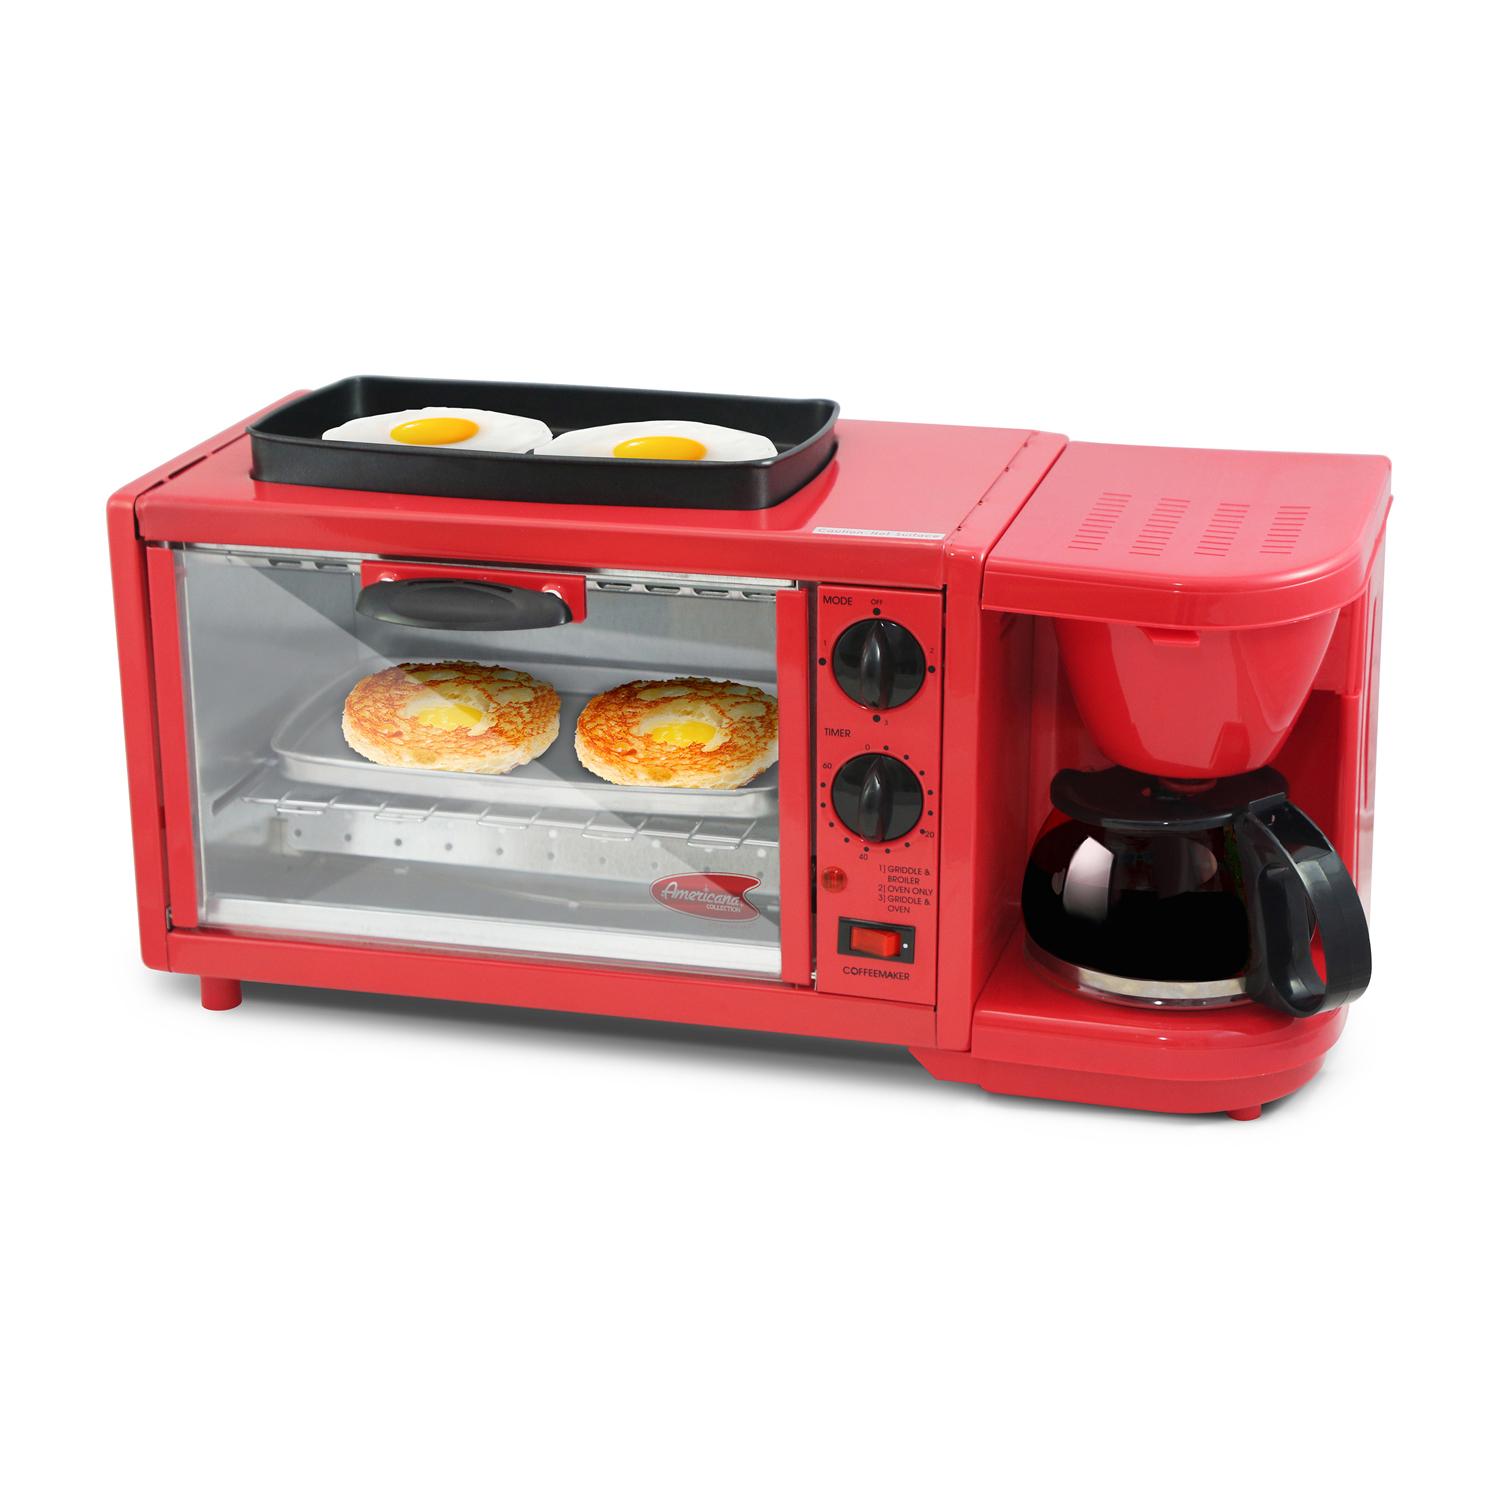 Americana by Elite 3 in 1 Extra Large Breakfast Center, Coffee, Toaster Oven, Griddle, Red by Maxi Matic USA